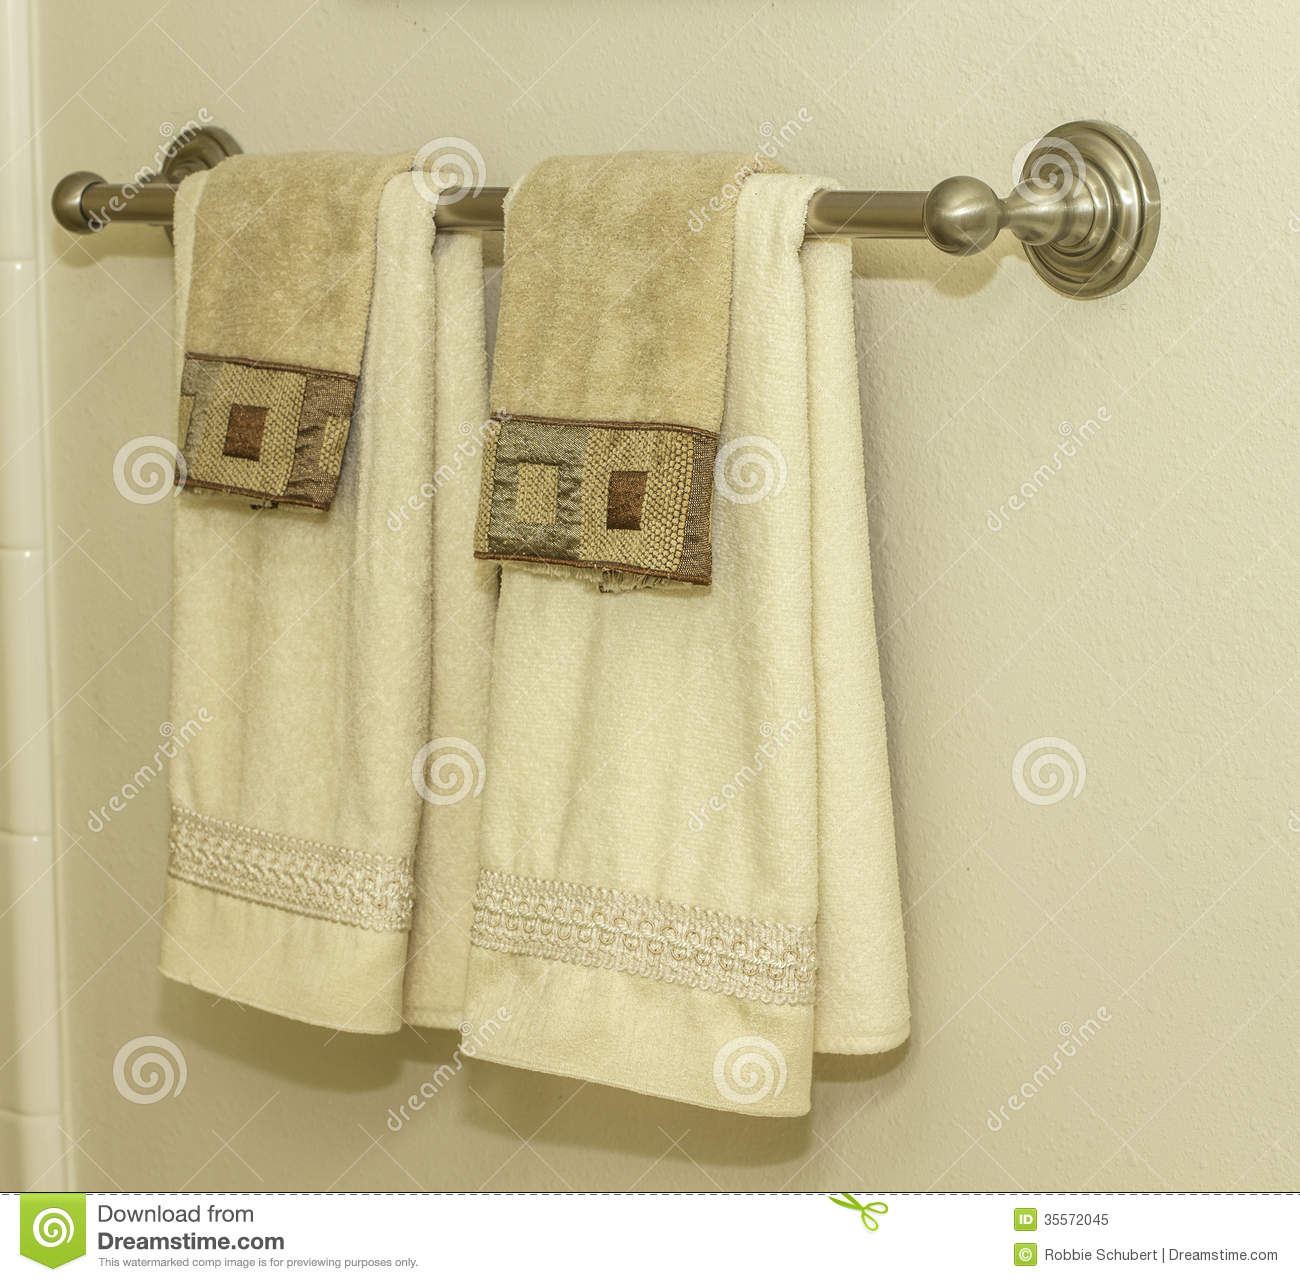 A Bathroom Towel Rack Hanging On A Wall.